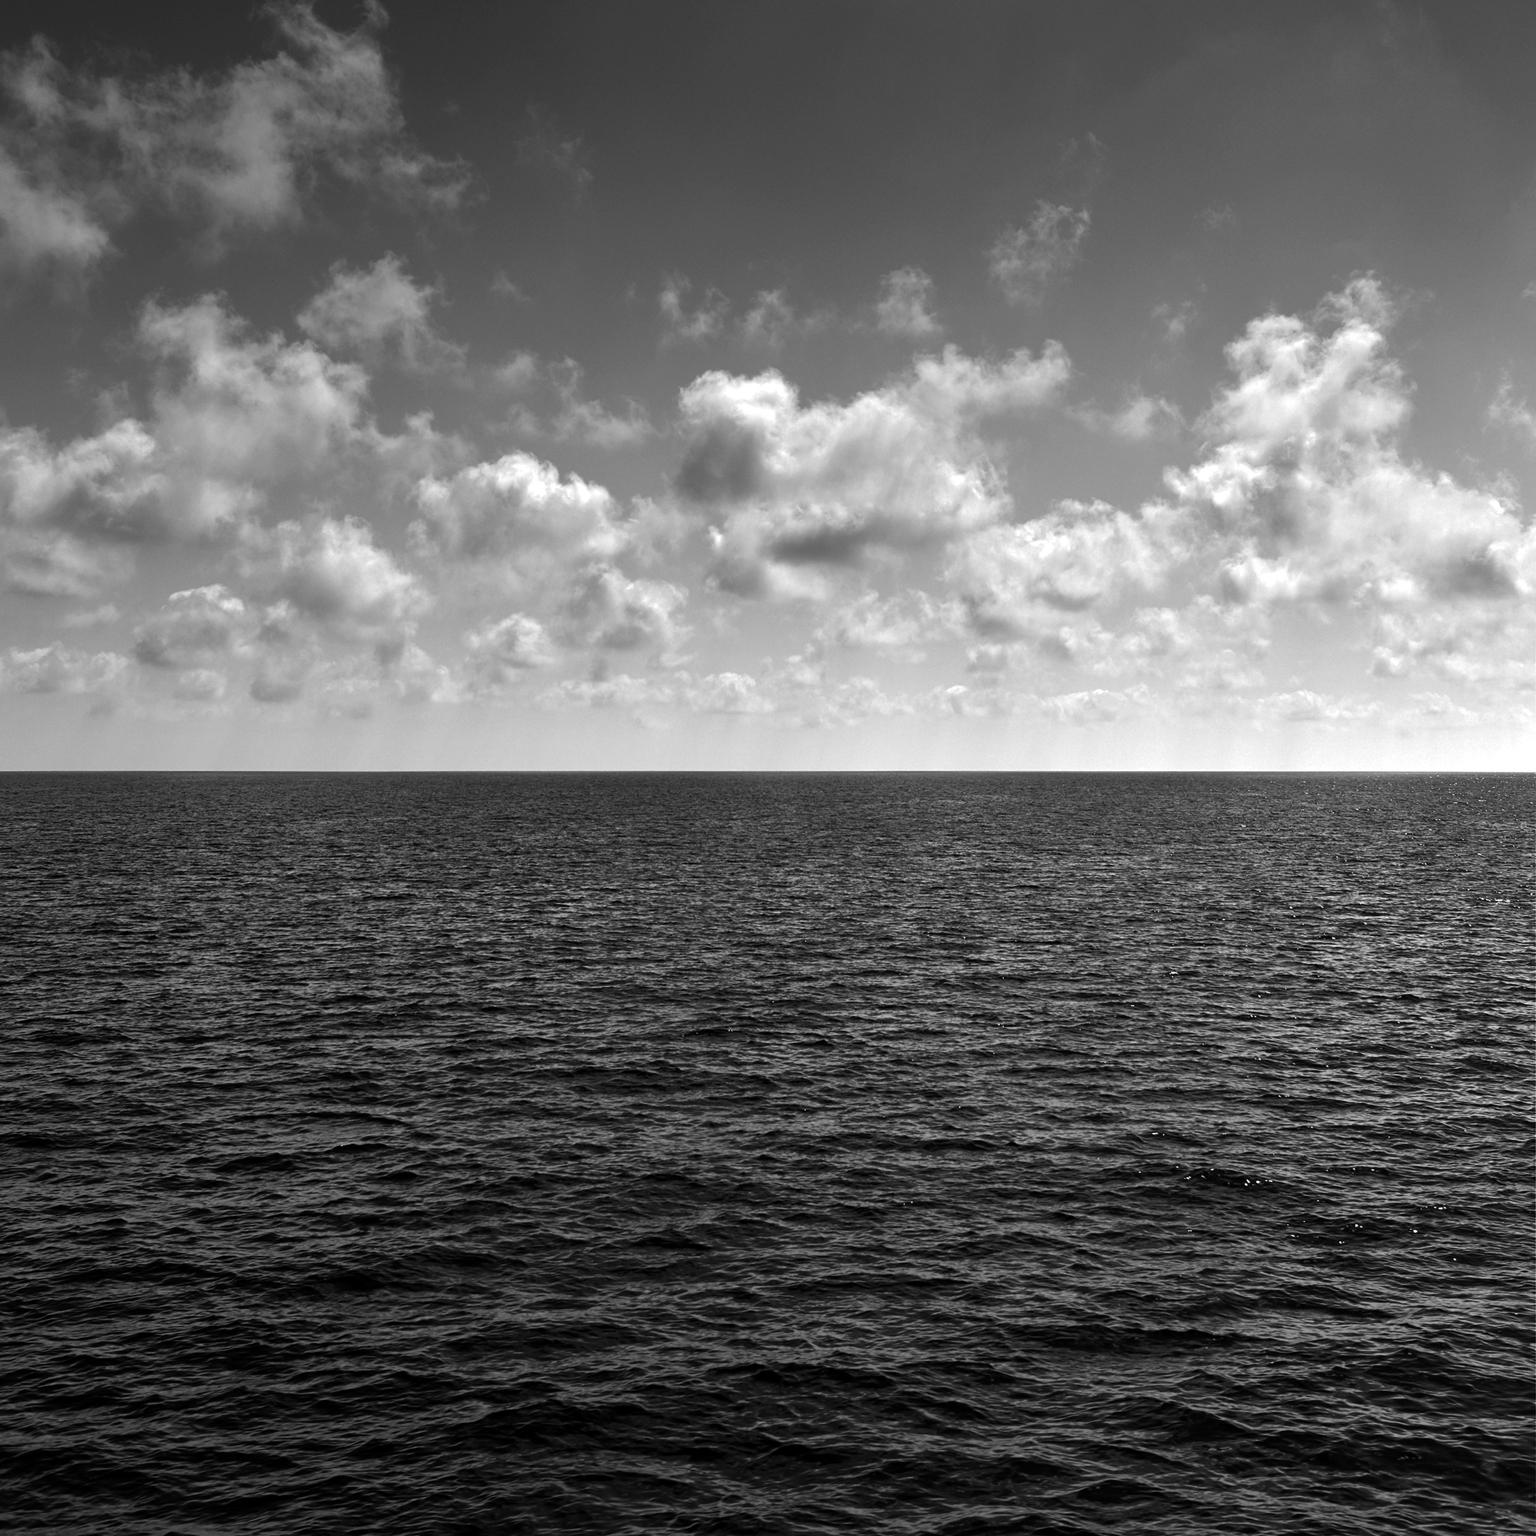 Seascape VII - large format photograph of cloud formations and reflecting sea